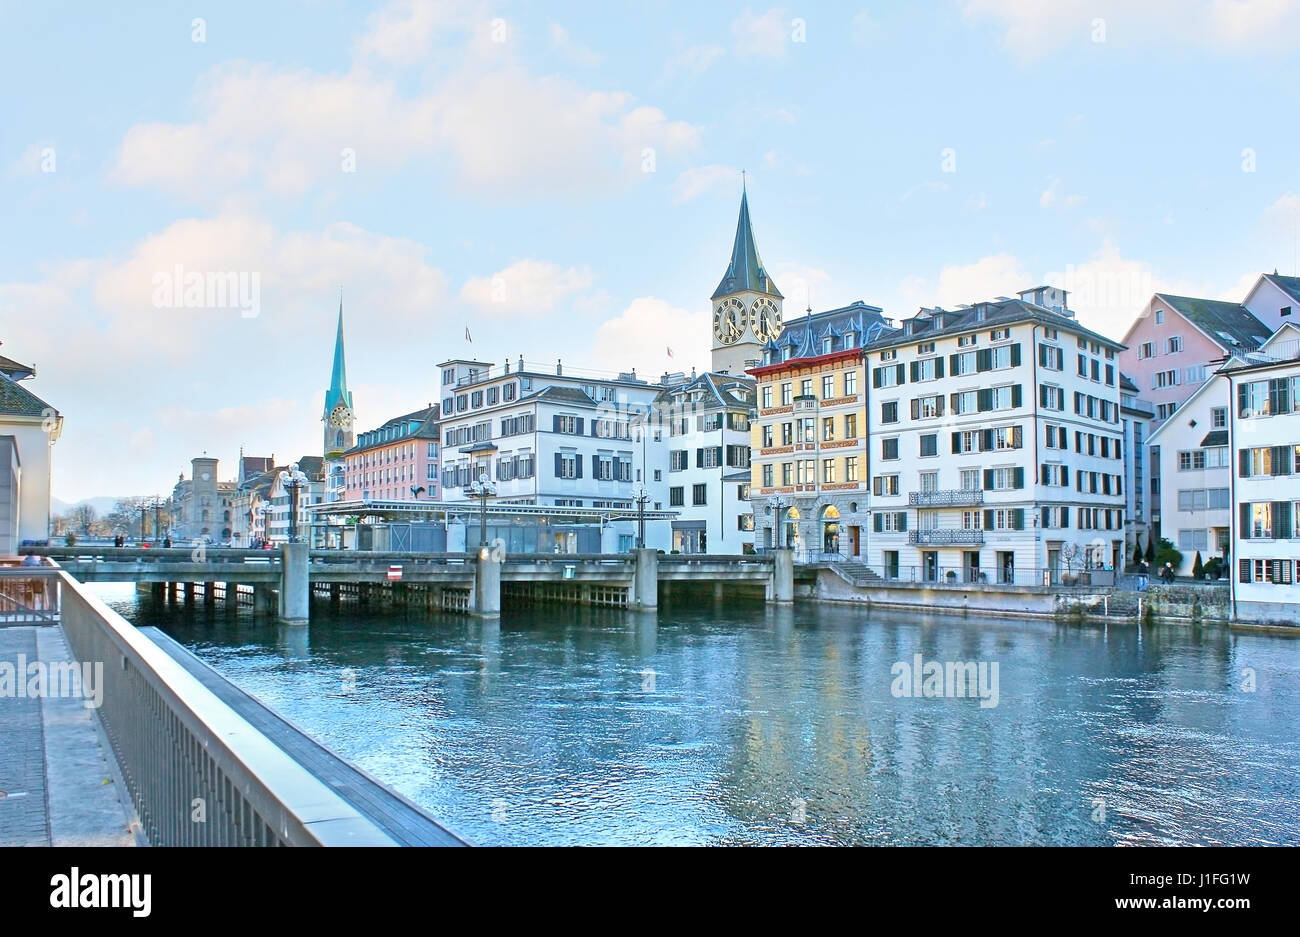 The Limmat quay overlooks the bridges and historic neighborhoods of the city center, the tall spires of Fraumunster - Stock Image